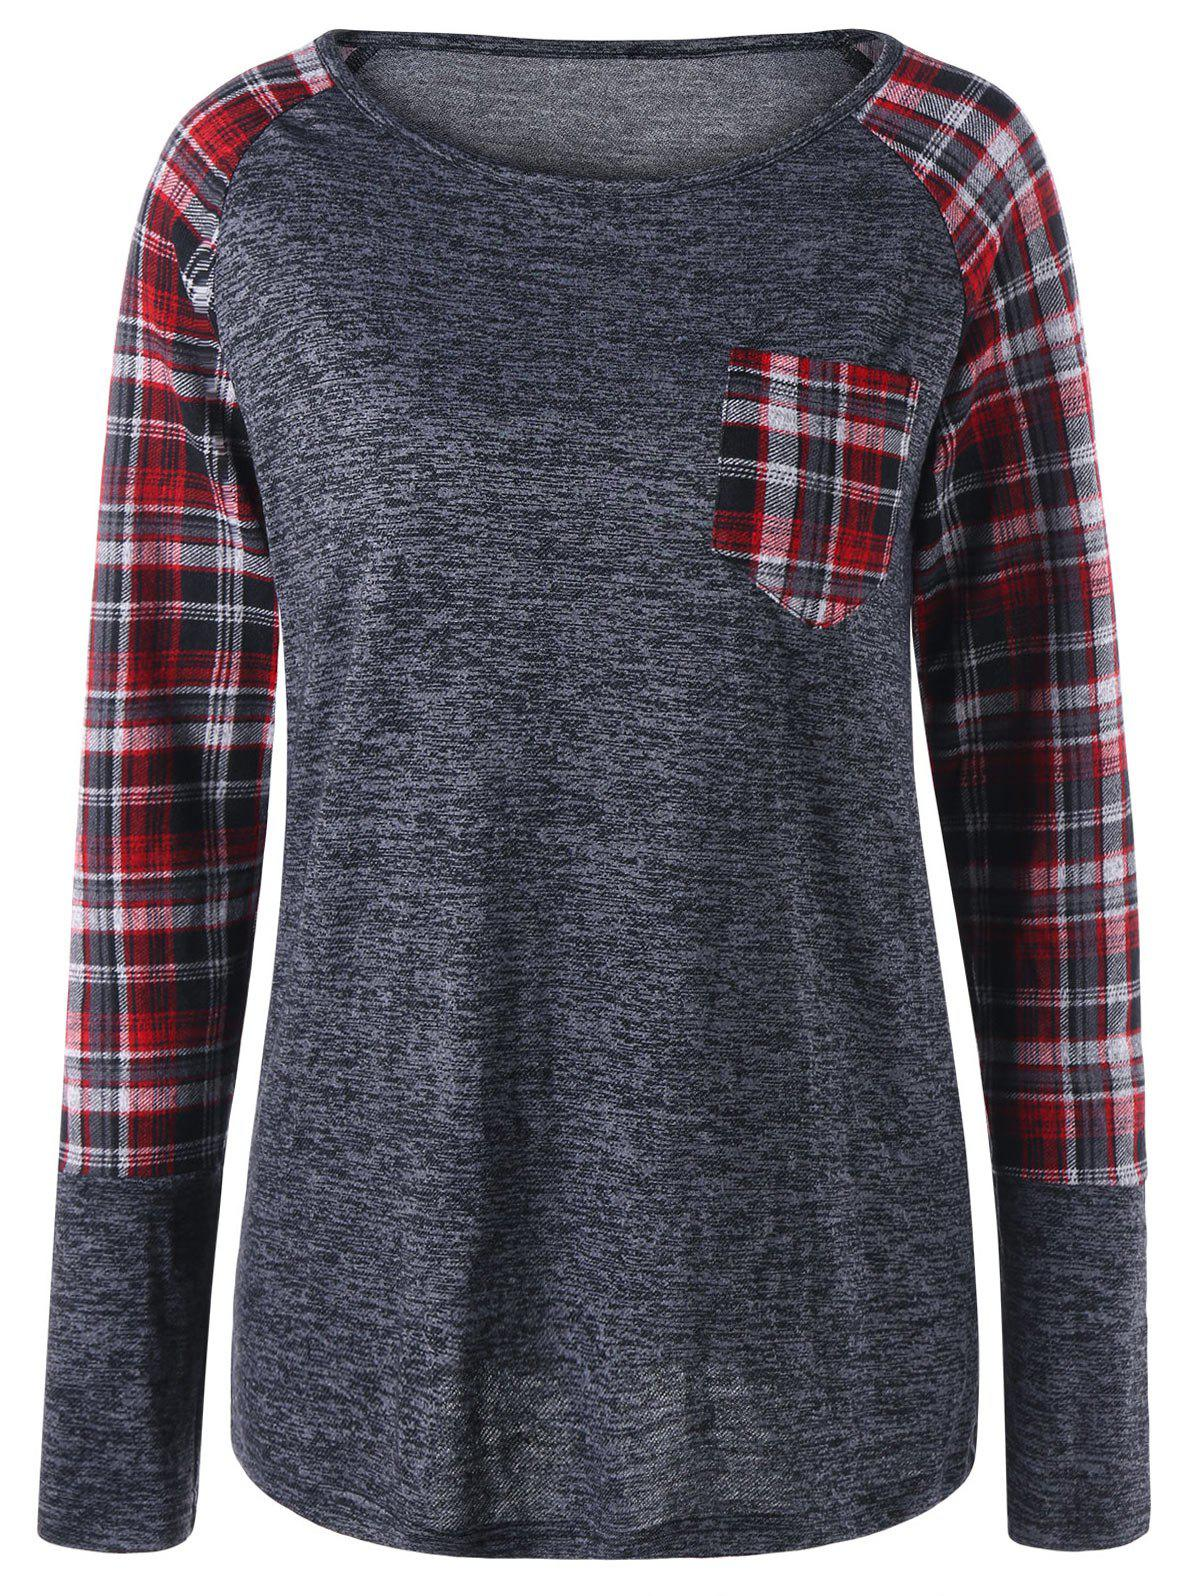 Plaid Patch Pocket Raglan Sleeve TopWOMEN<br><br>Size: M; Color: GRAY; Material: Polyester; Shirt Length: Regular; Sleeve Length: Full; Collar: Round Neck; Style: Casual; Pattern Type: Plaid; Season: Fall,Spring; Weight: 0.2400kg; Package Contents: 1 x Top;